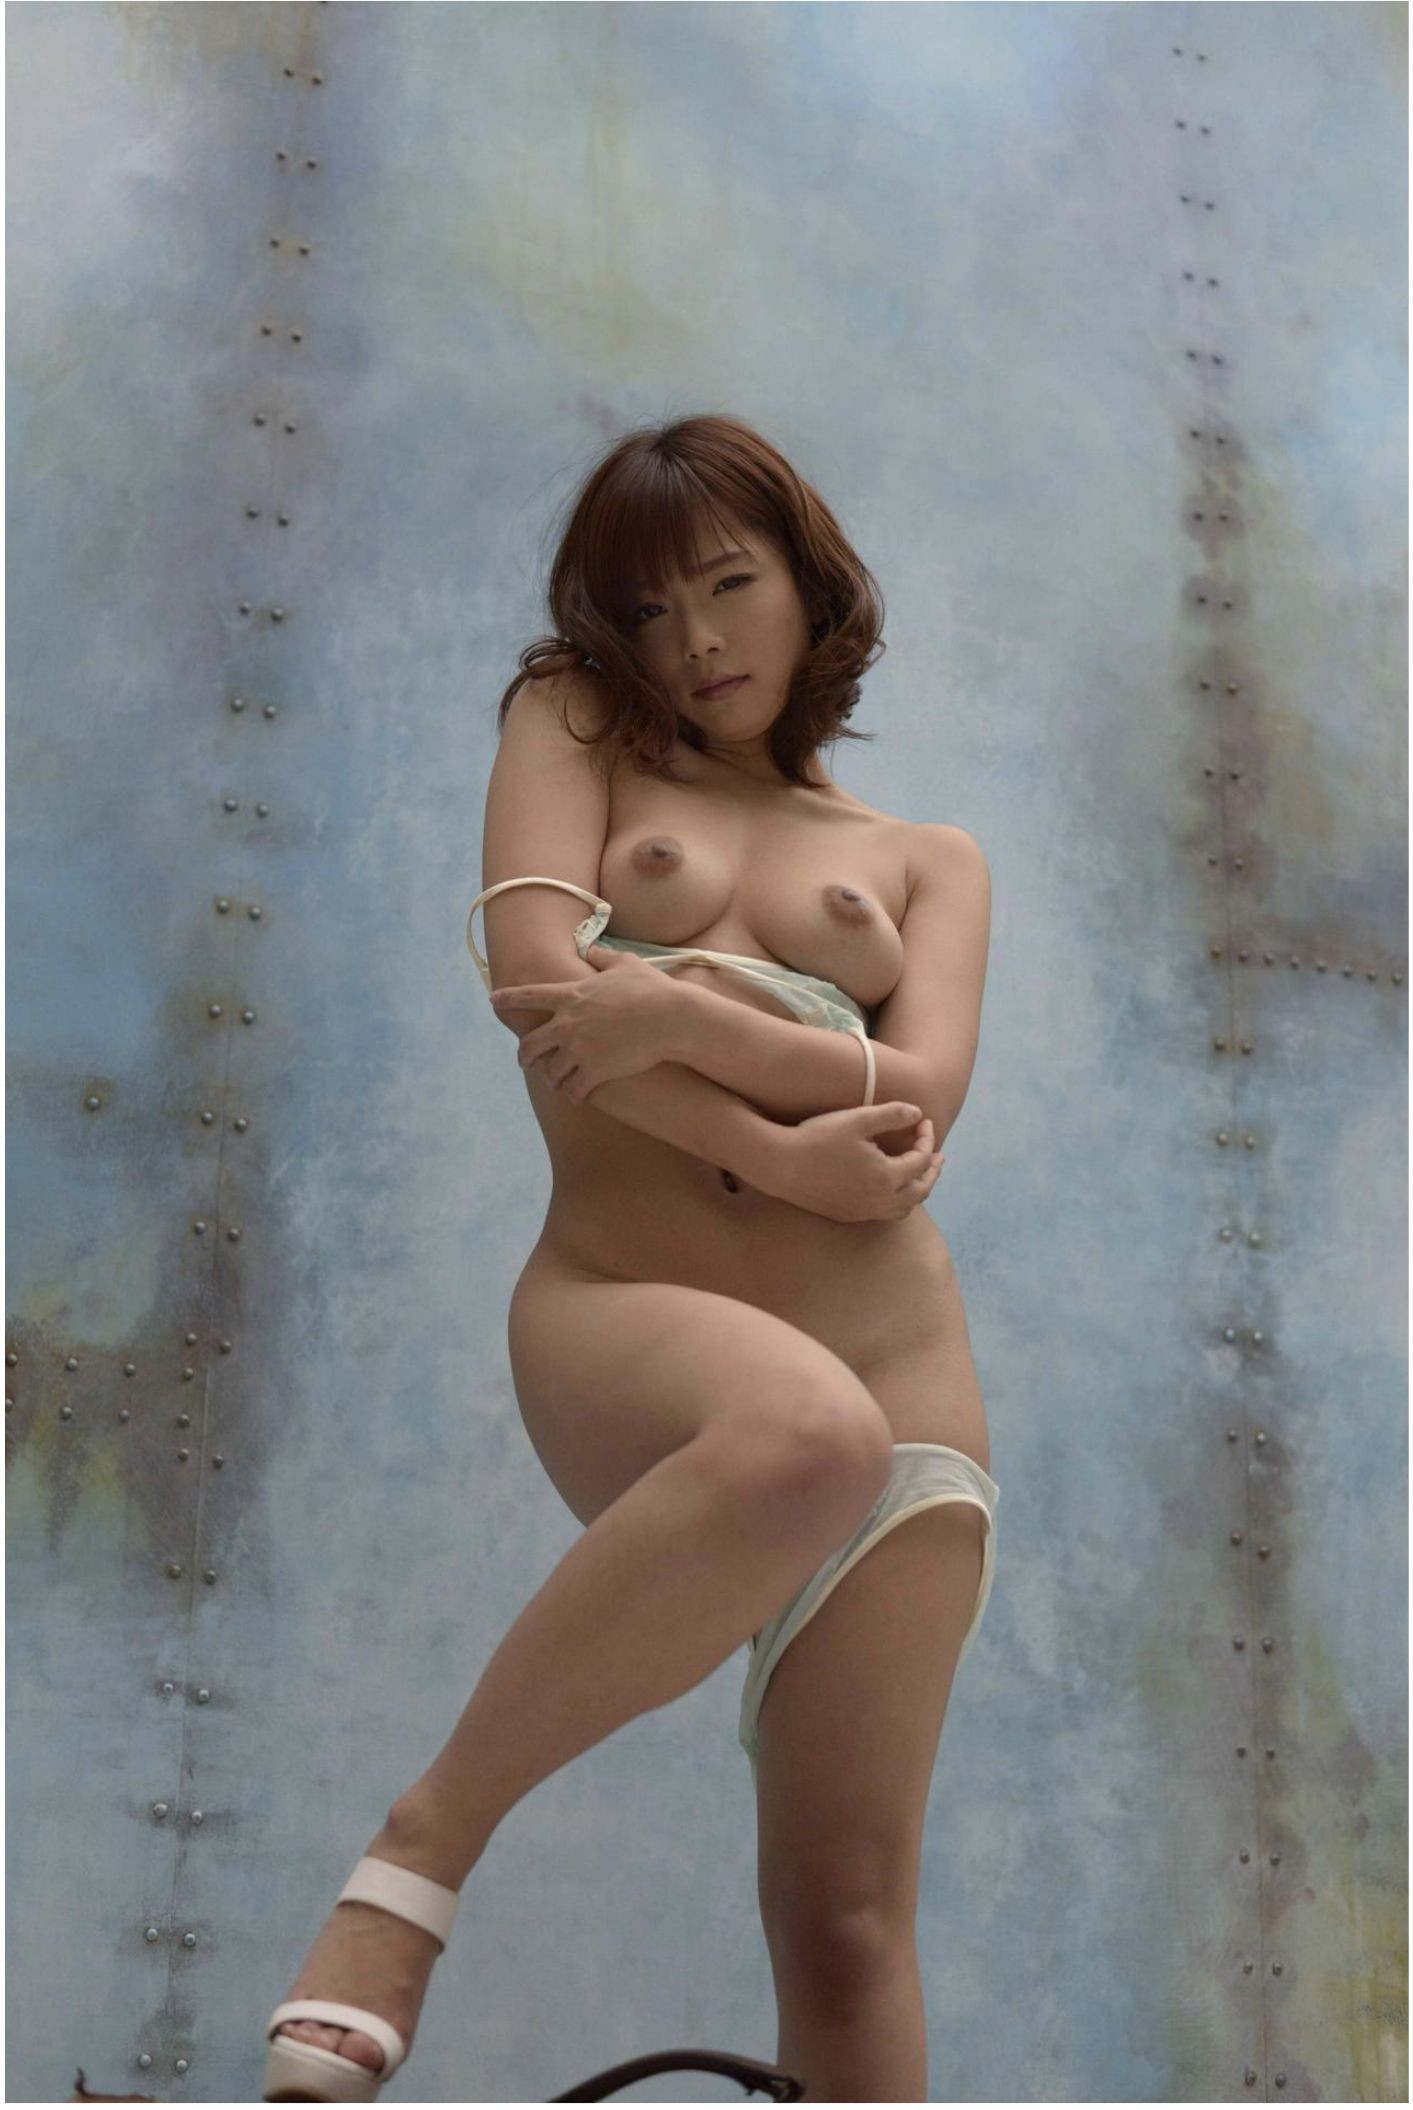 SOFT ON DEMAND GRAVURE COLLECTION 紗倉まな04 photo 099